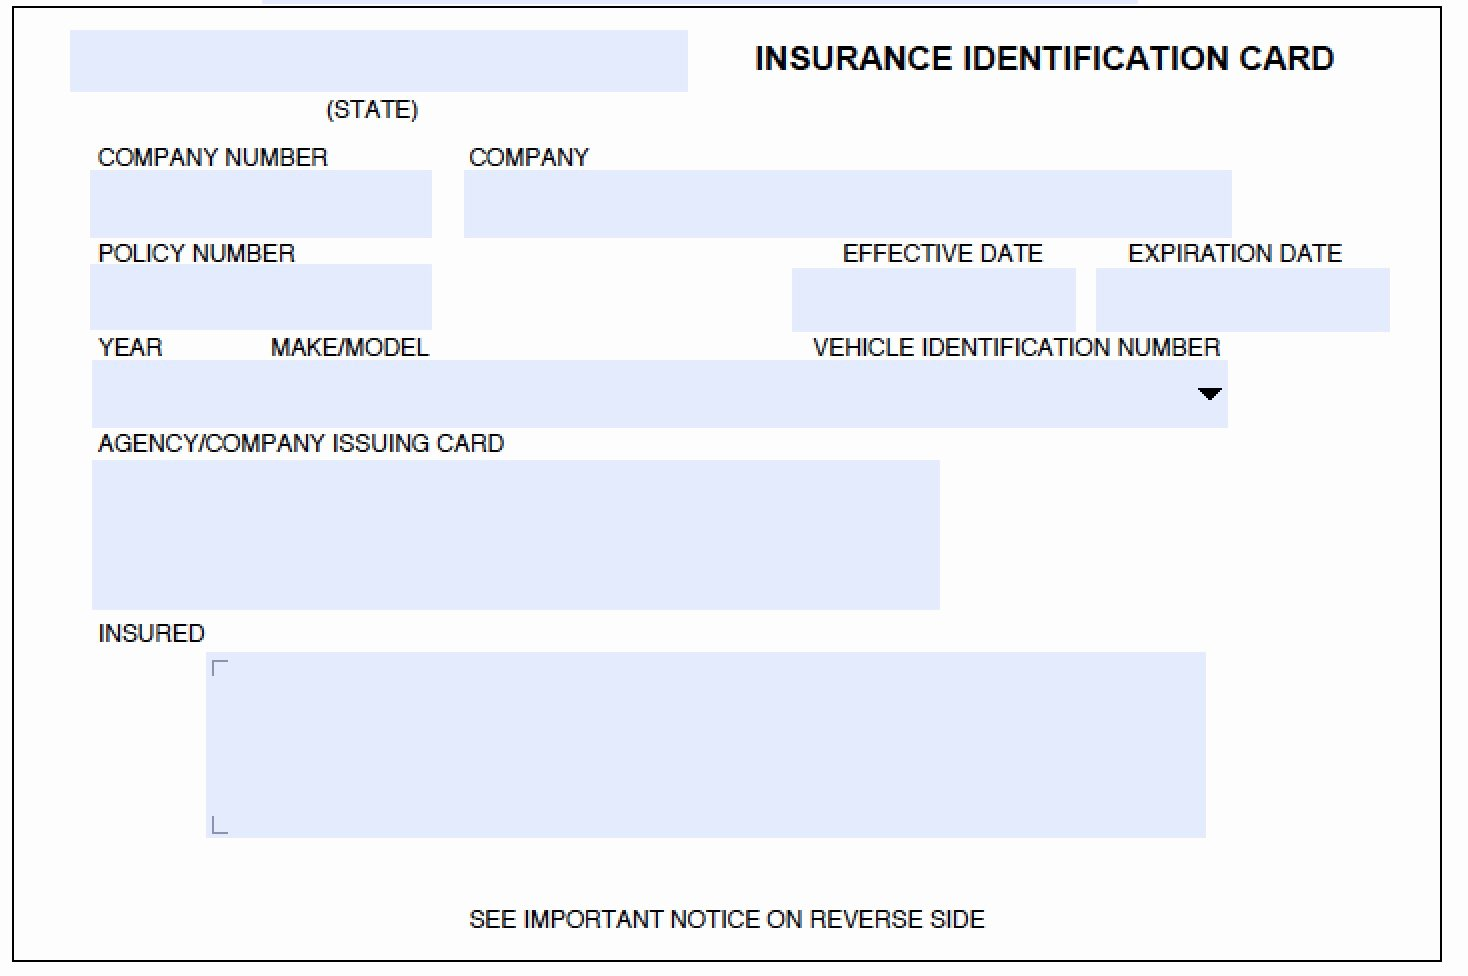 Auto Insurance Card Template Pdf New Download Auto Insurance Card Template Wikidownload